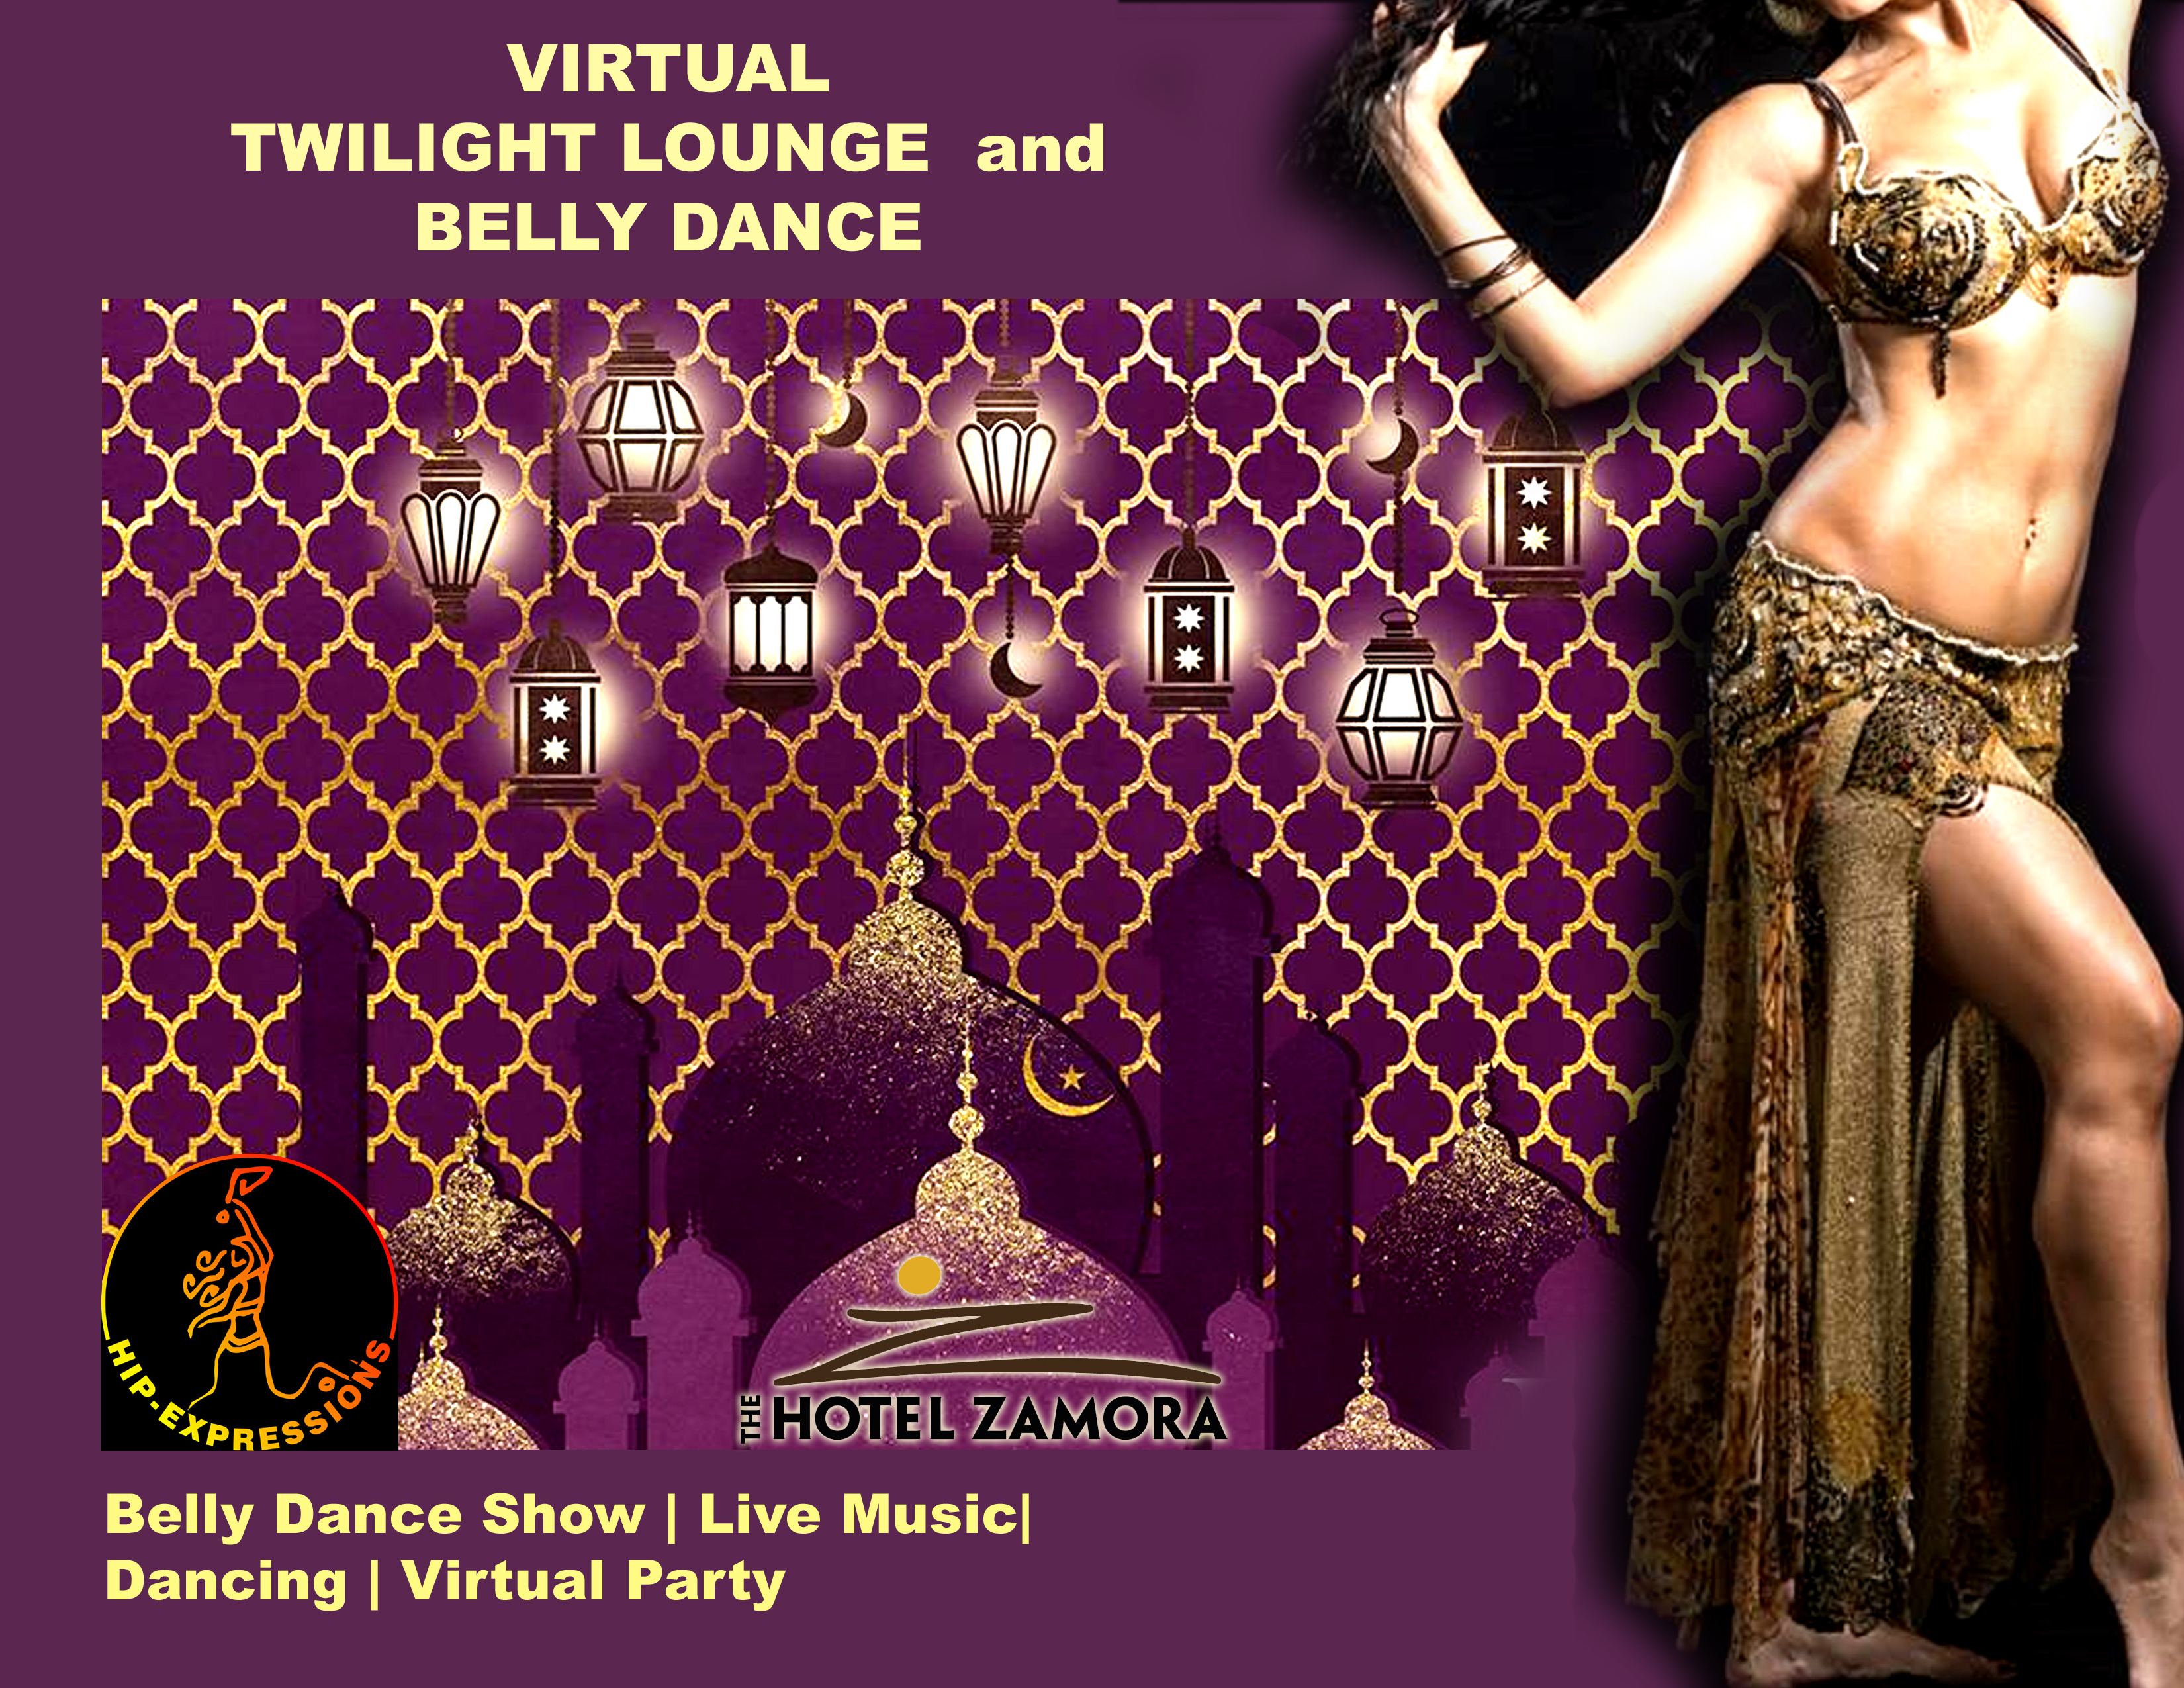 VIRTUAL TWILIGHT LOUNGE AND BELLY DANCE SHOW LIVE!